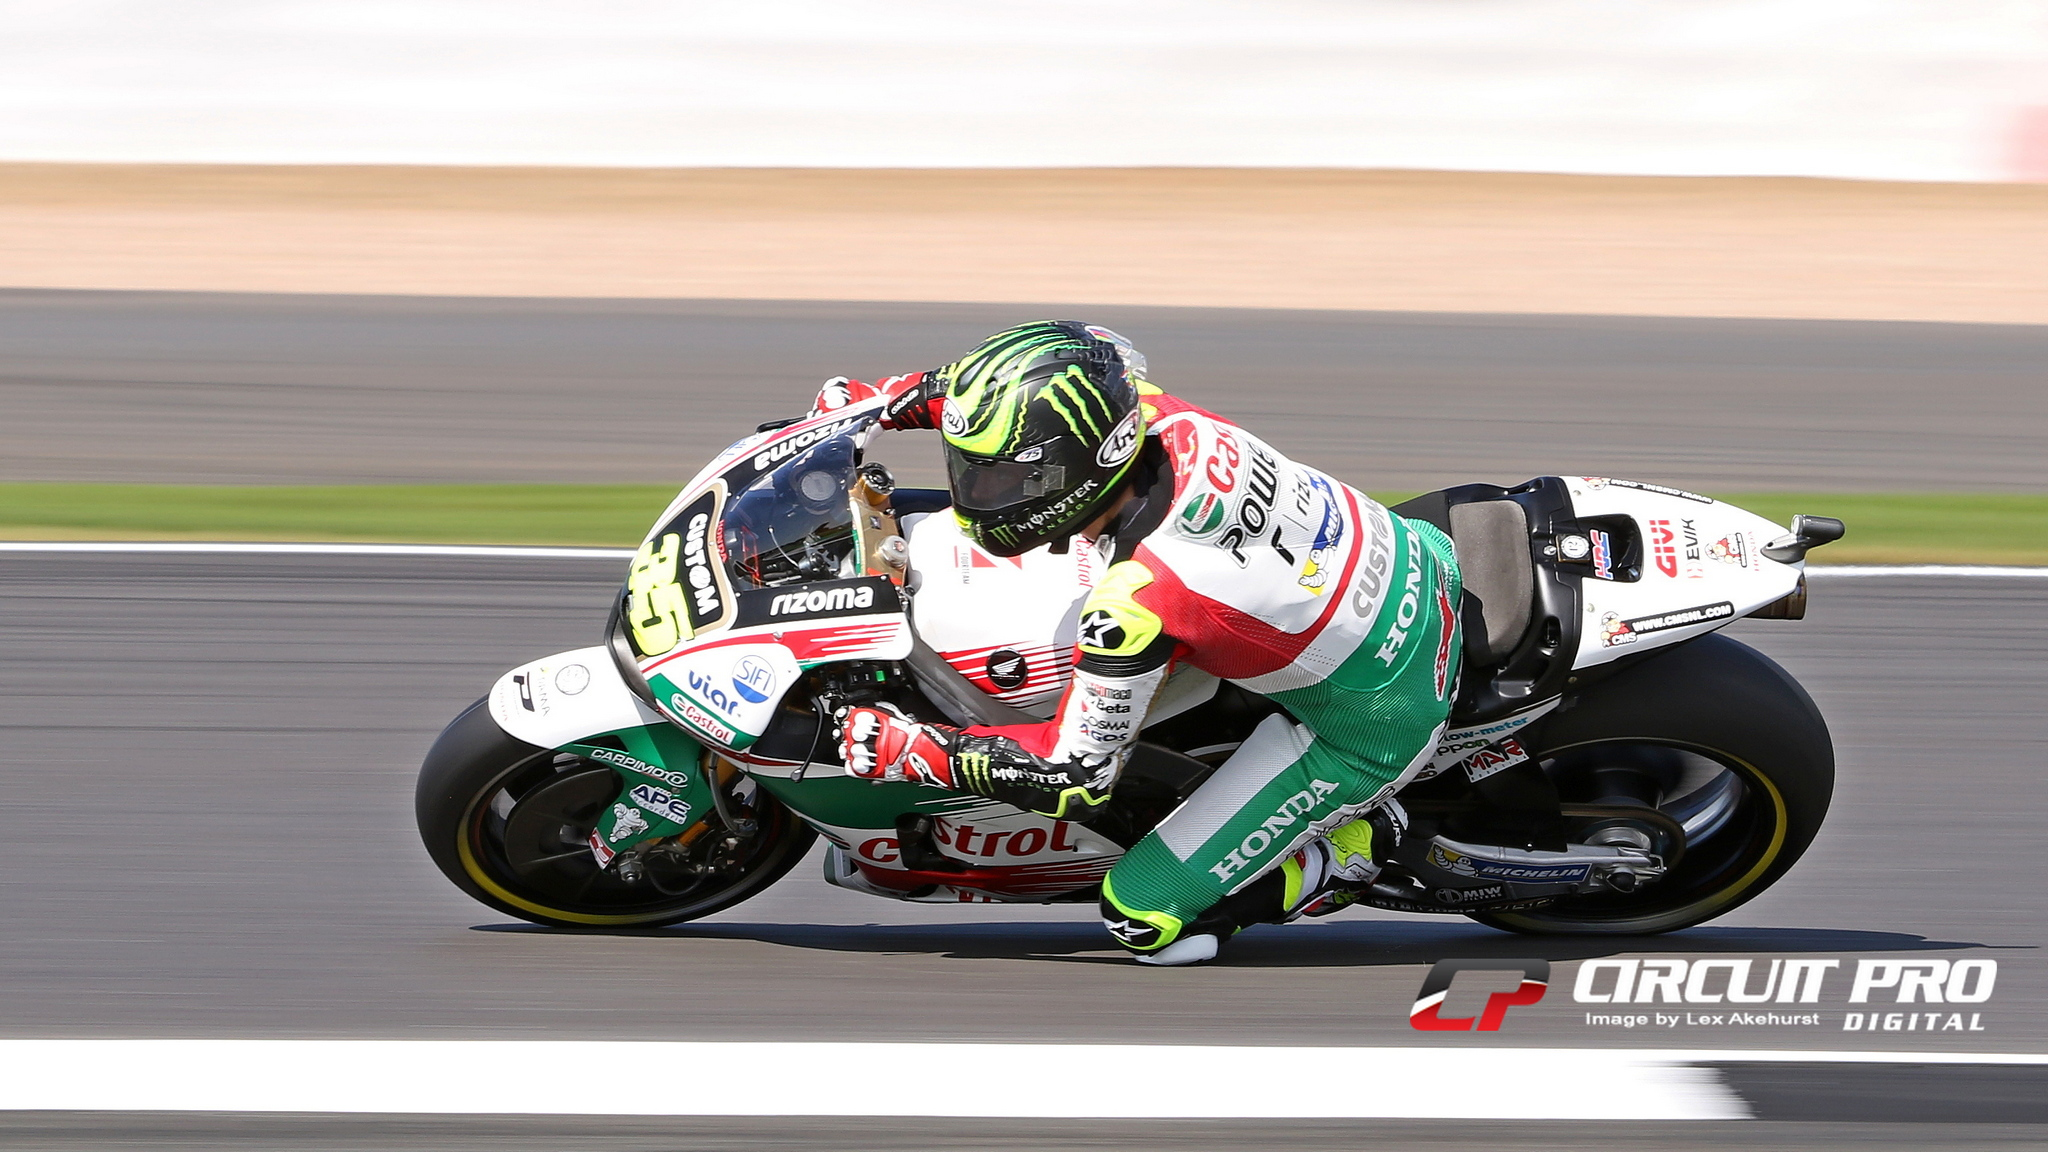 MotoGP: Crutchlow fastest on Friday – ahead of Rossi and Viñales at Silverstone